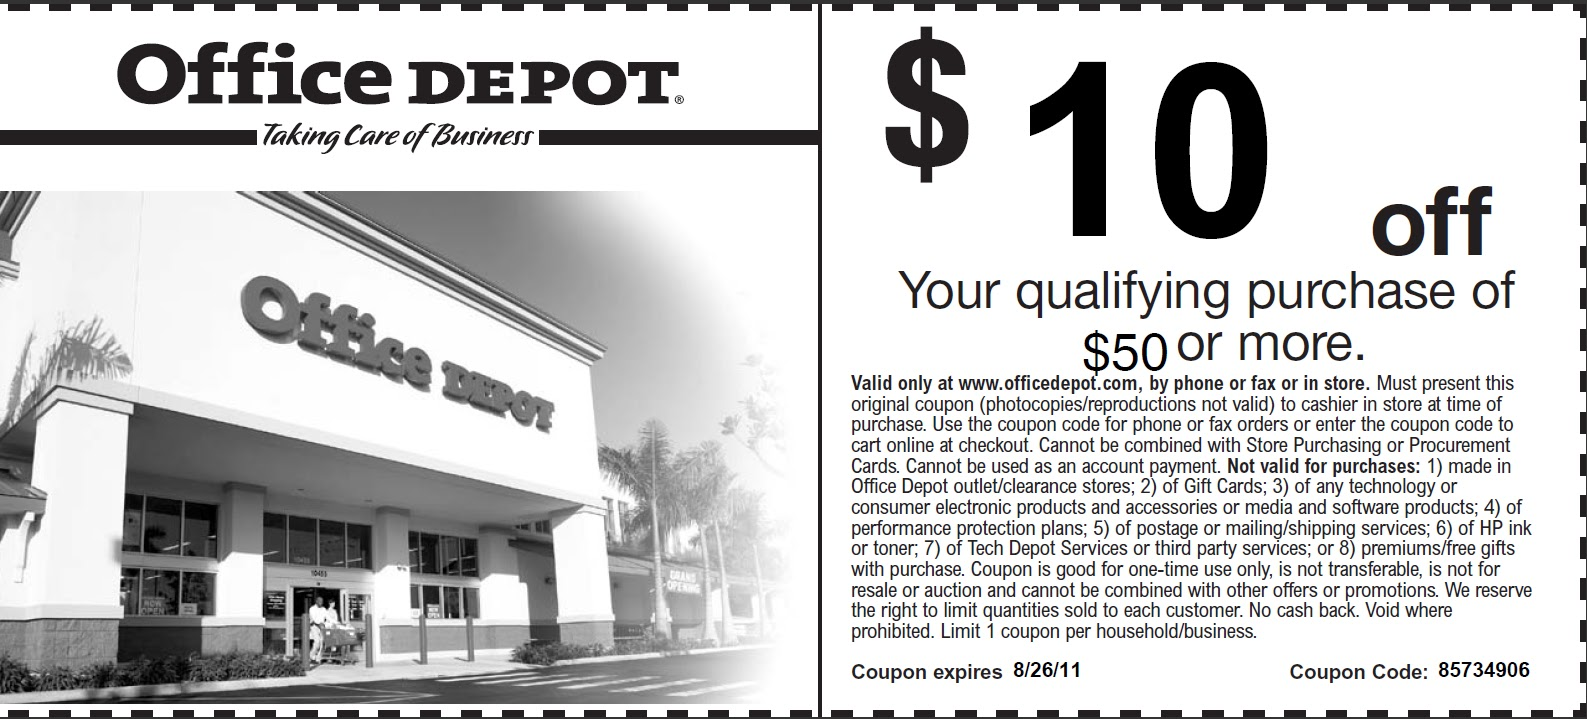 Office Depot Coupons In Store / Claritin Coupons